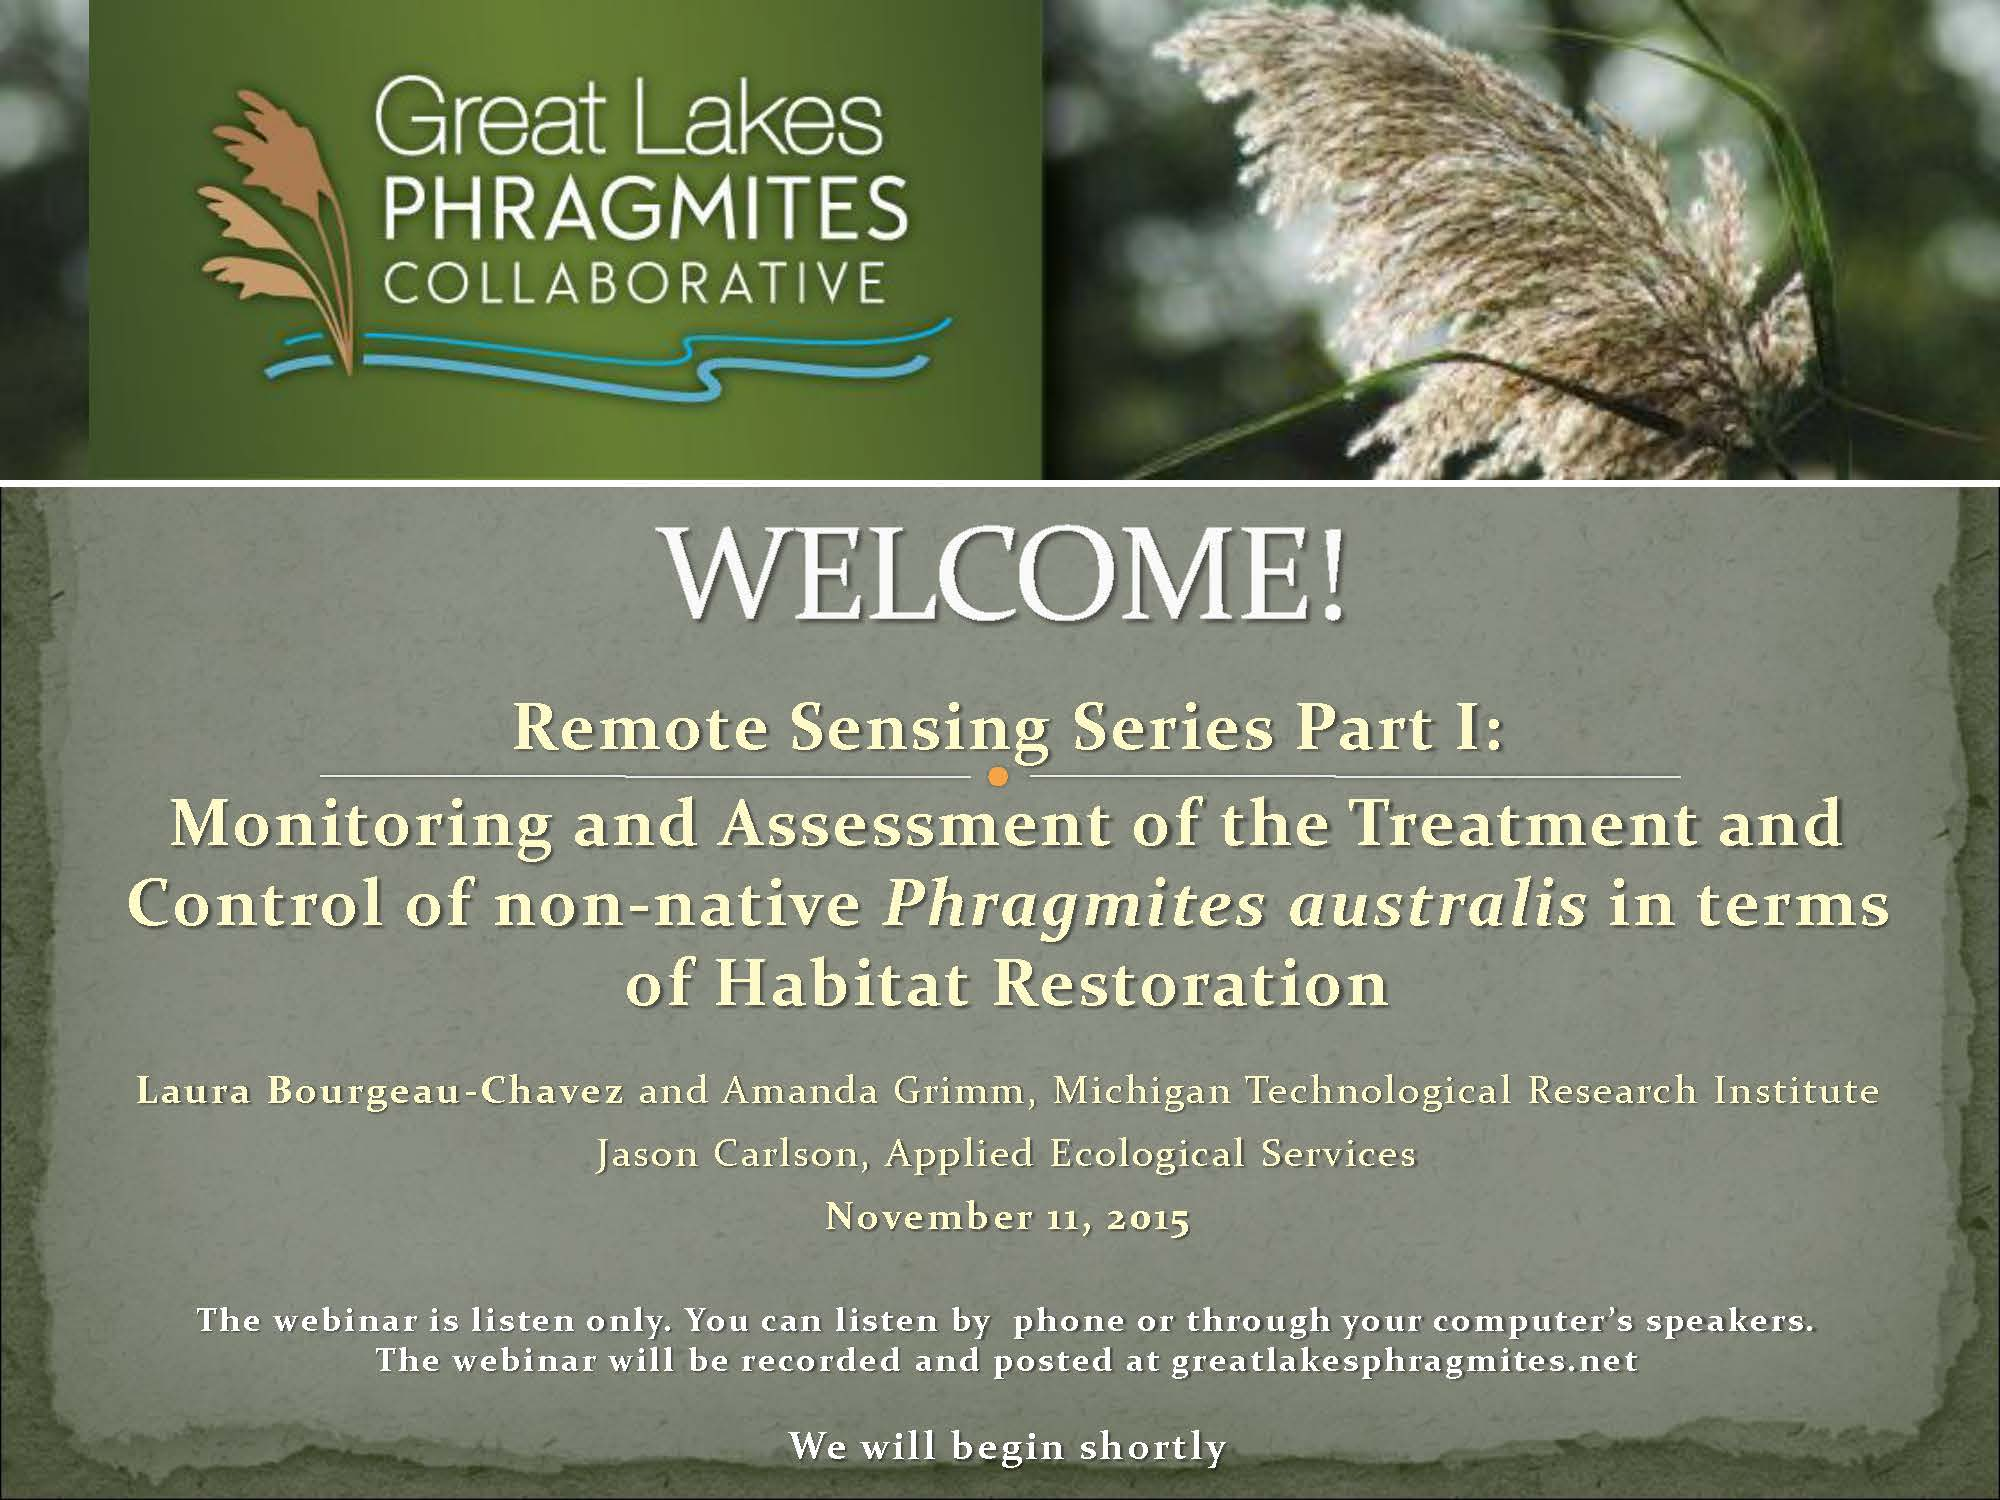 Webinar on Remote Sensing to Monitor Treatment of Phragmites